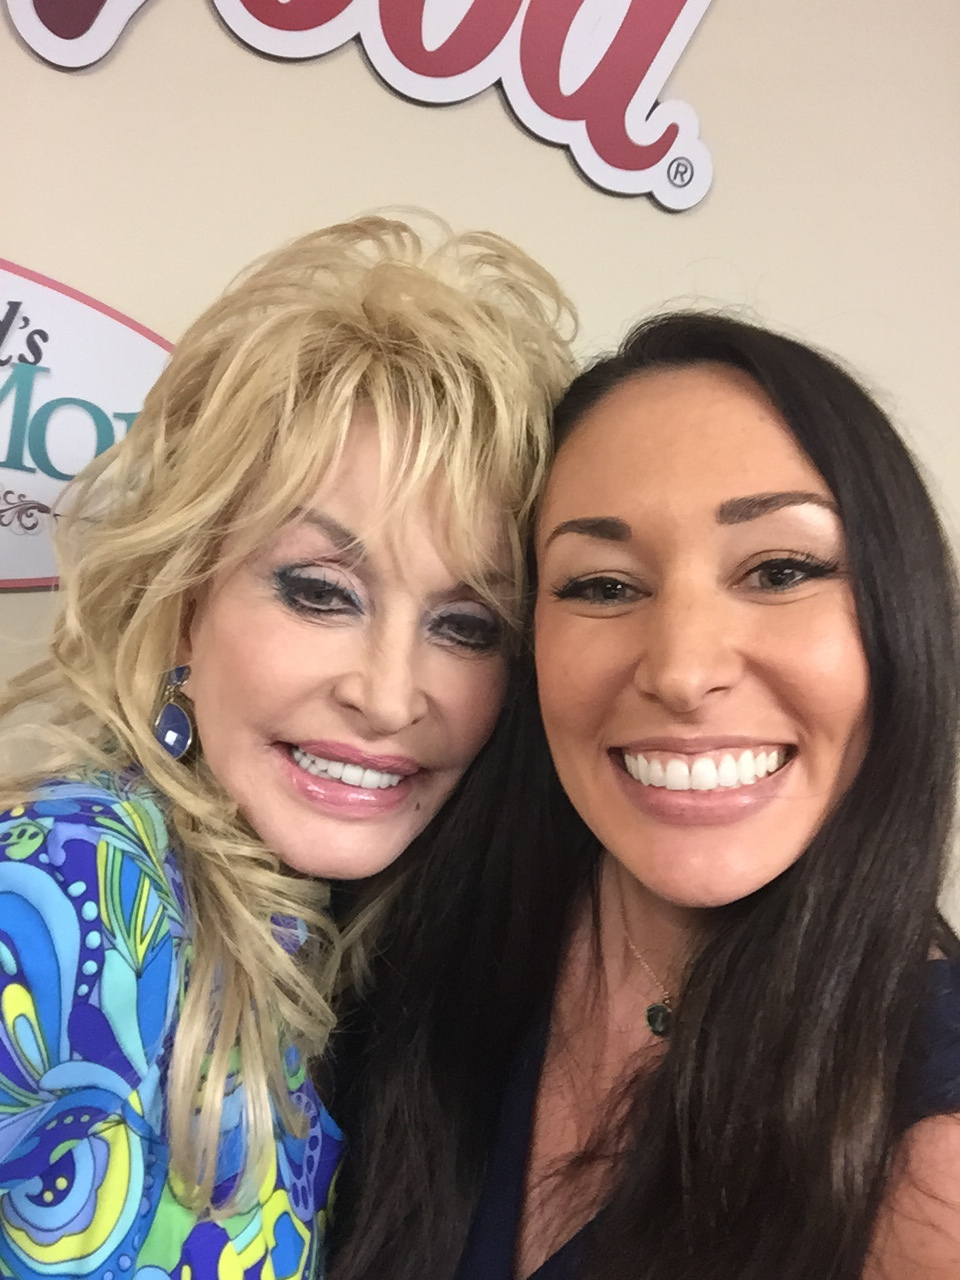 5 things I learned from Dolly Parton